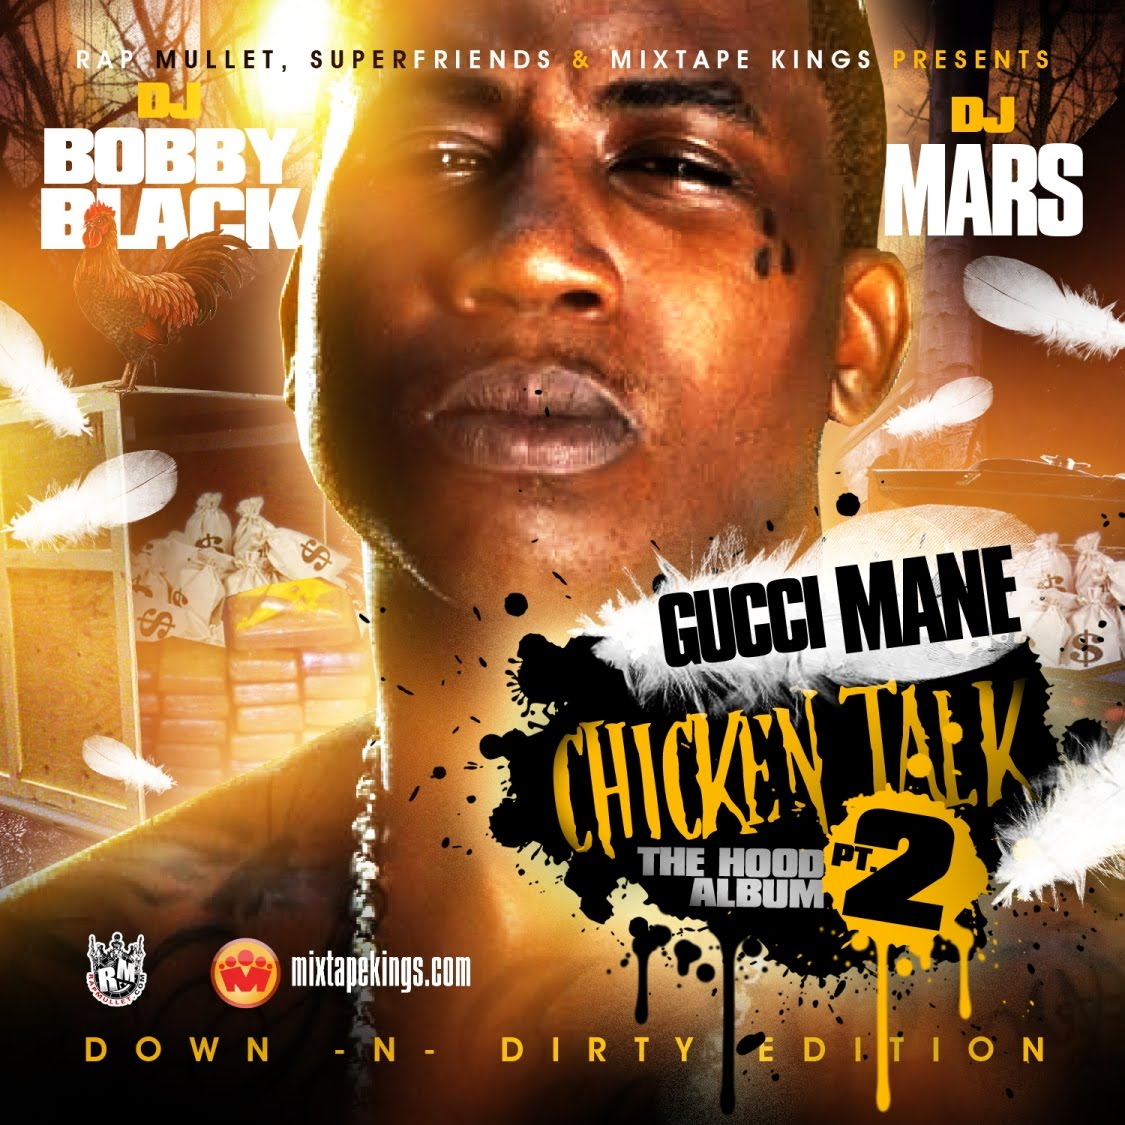 history of gucci 22 august 2018 gucci mane news, gossip, photos of gucci mane, biography, gucci mane girlfriend list 2016 relationship history gucci mane relationship list gucci mane dating history, 2018, 2017, list of gucci mane relationships.